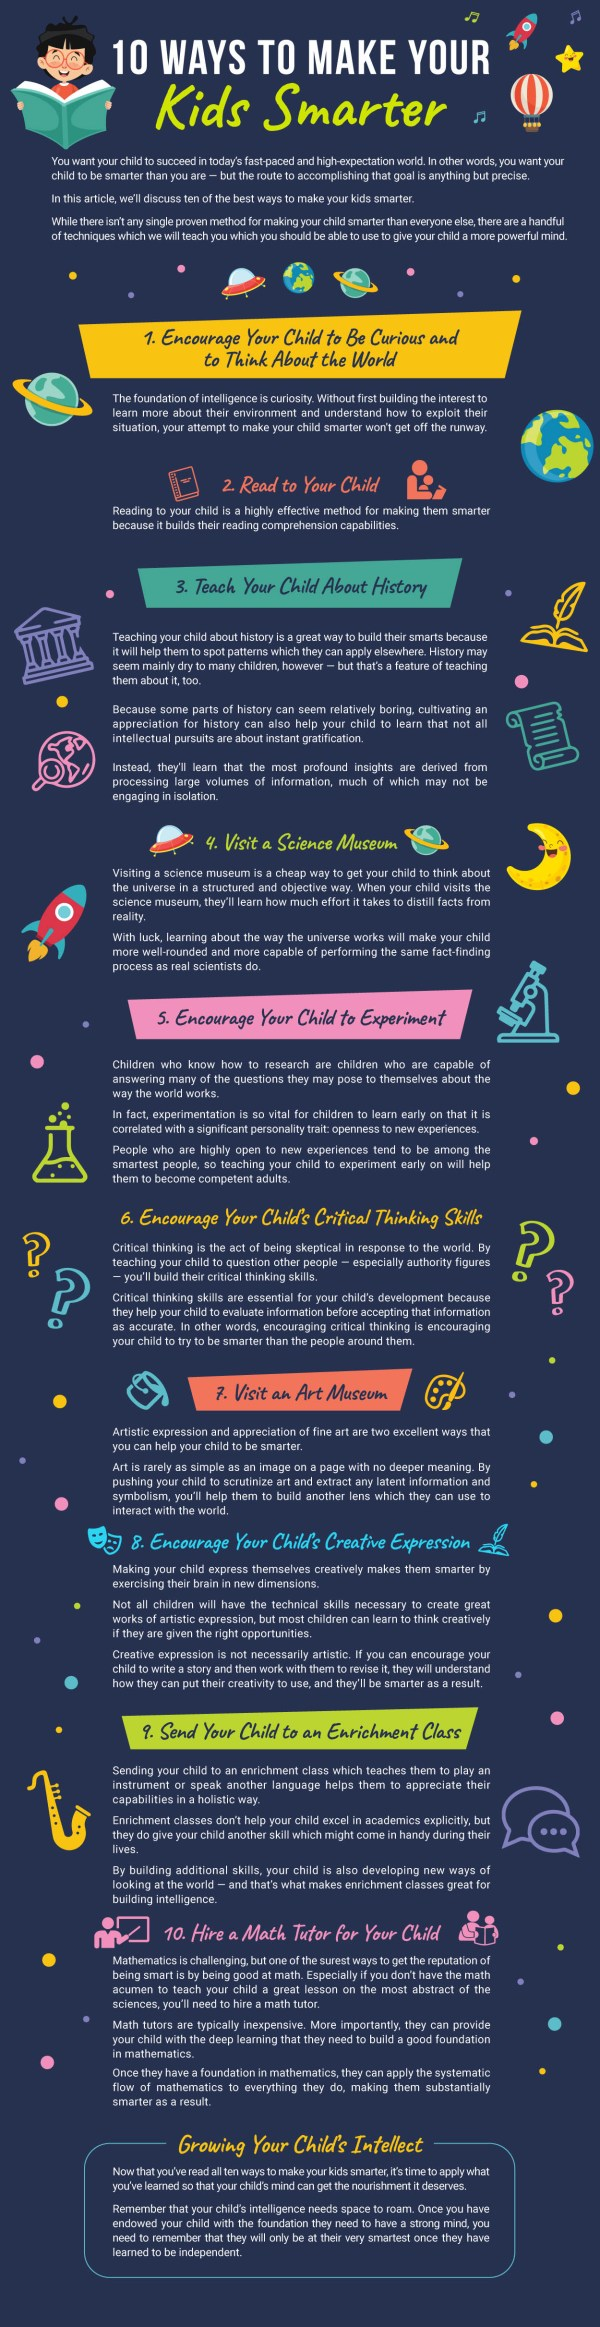 10-ways-make-your-kids-smarter-infographic-lkrllc